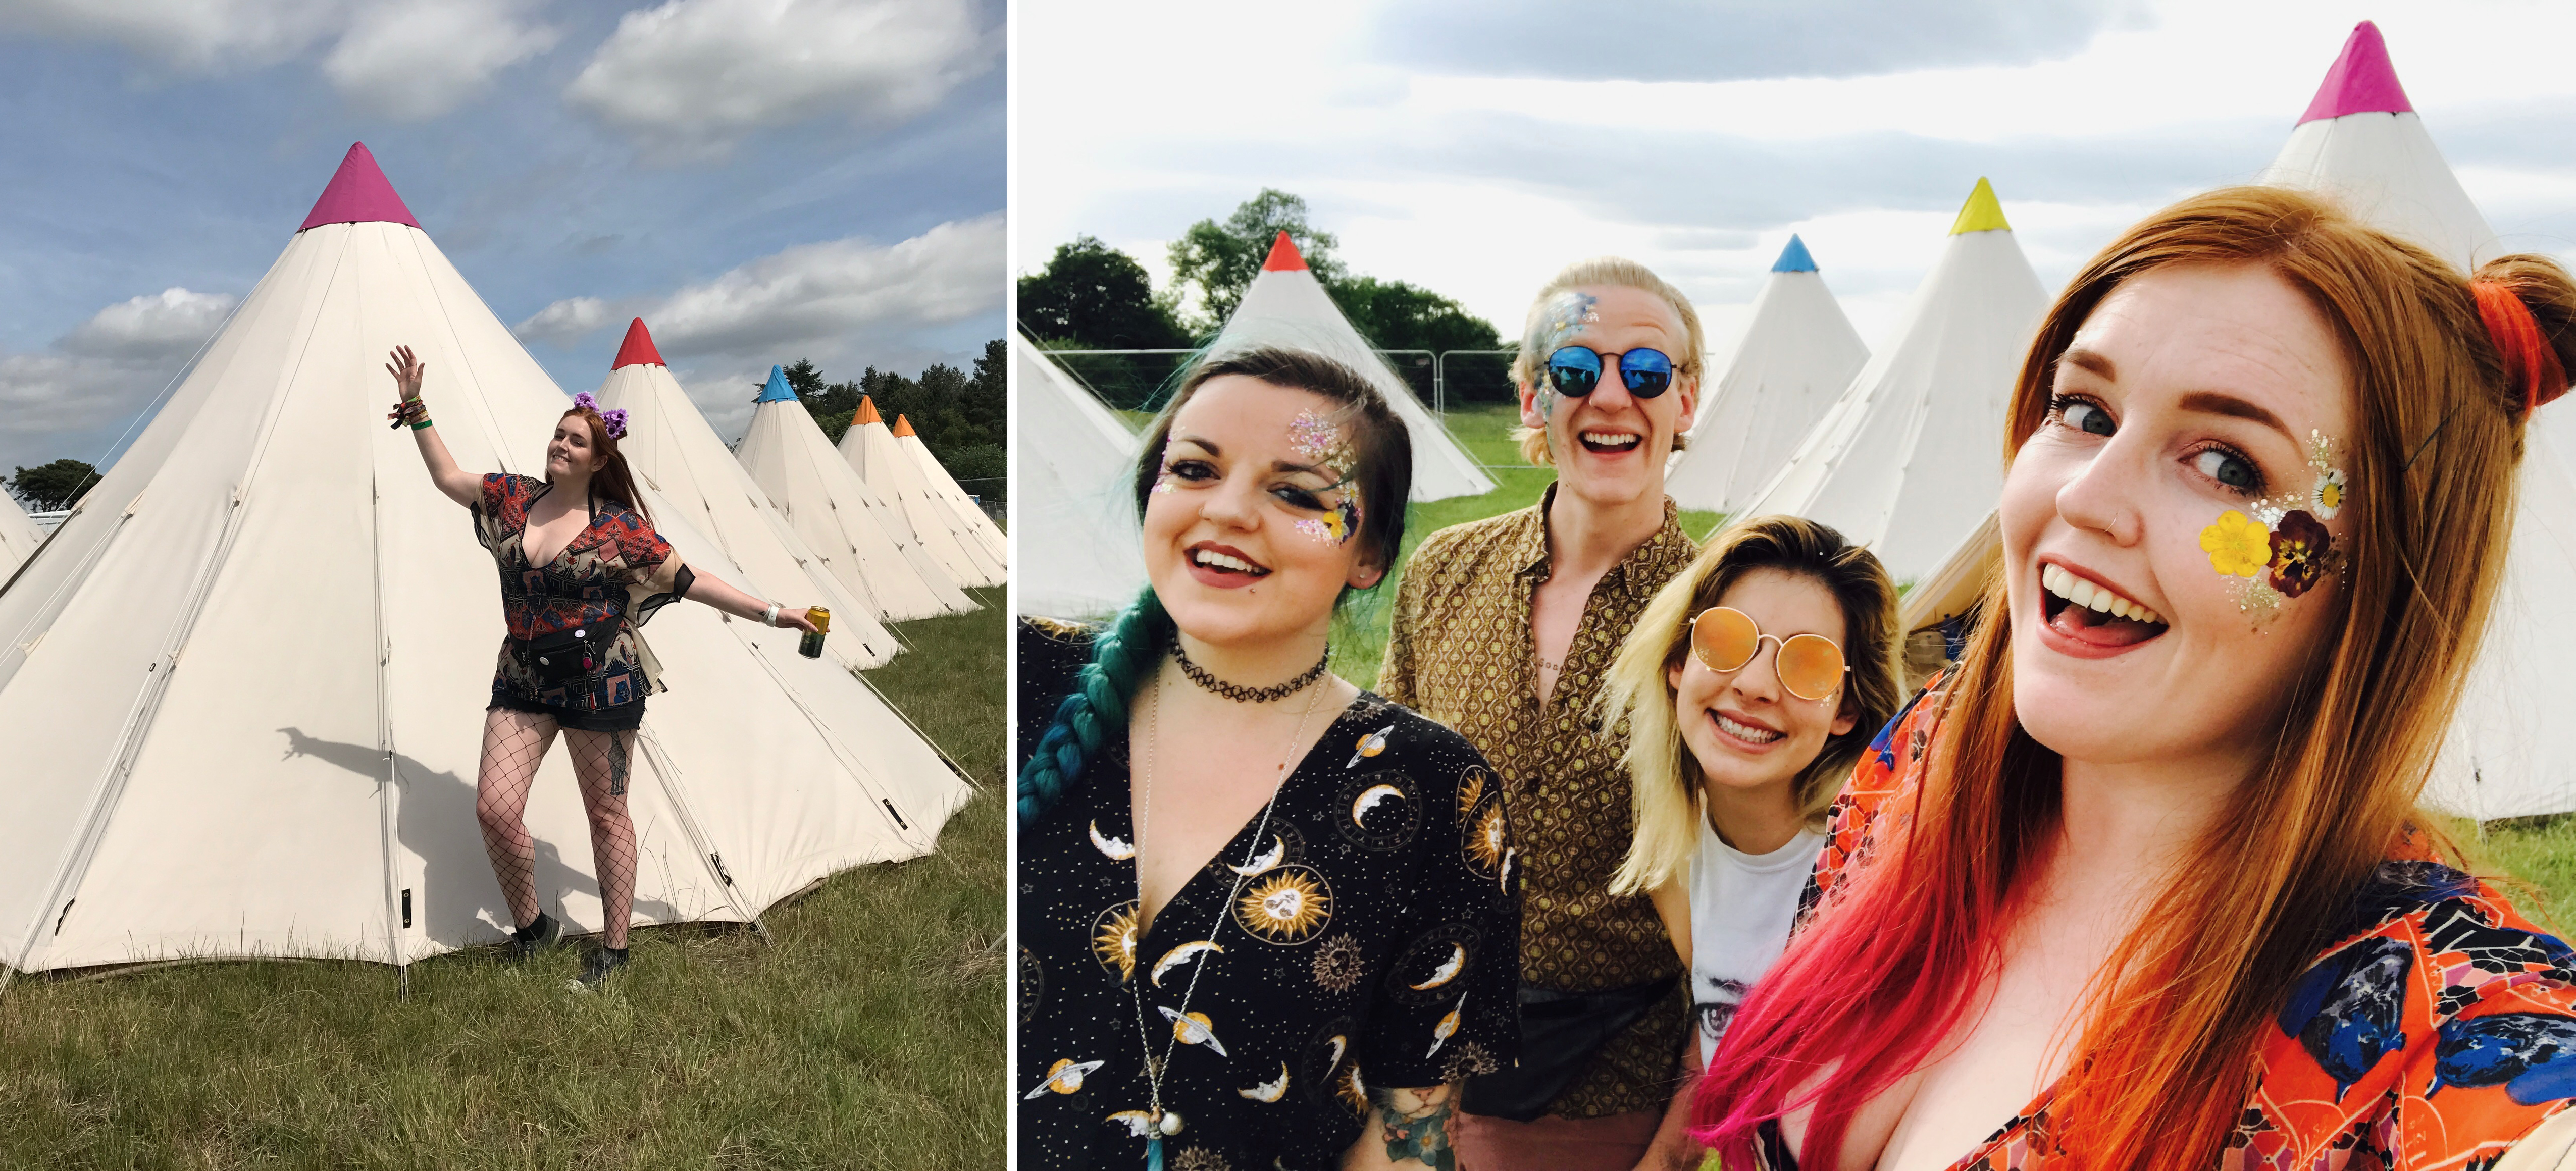 Being happy in our amazing tipi field!